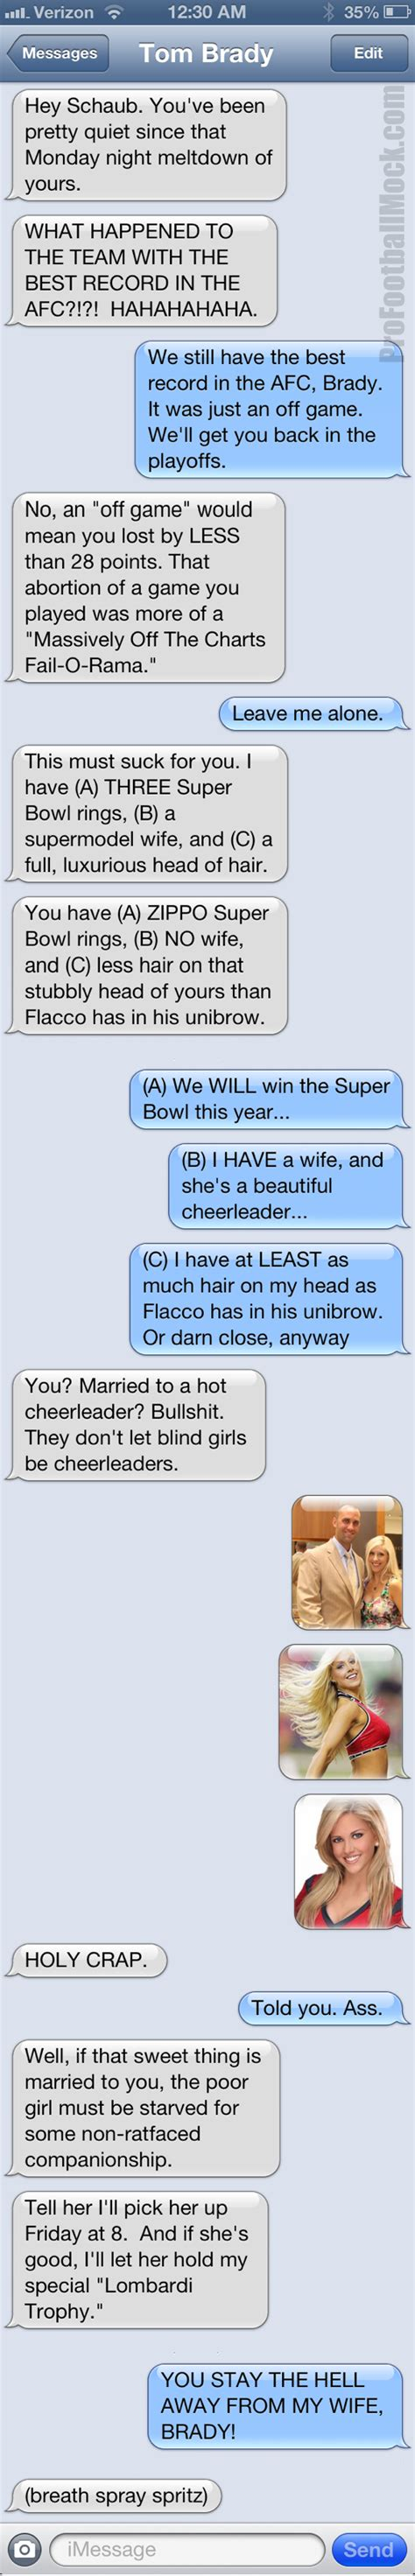 Tom Brady Waits For Giseles Text by Total Pro Sports Here S A Text Message Convo Between Tom